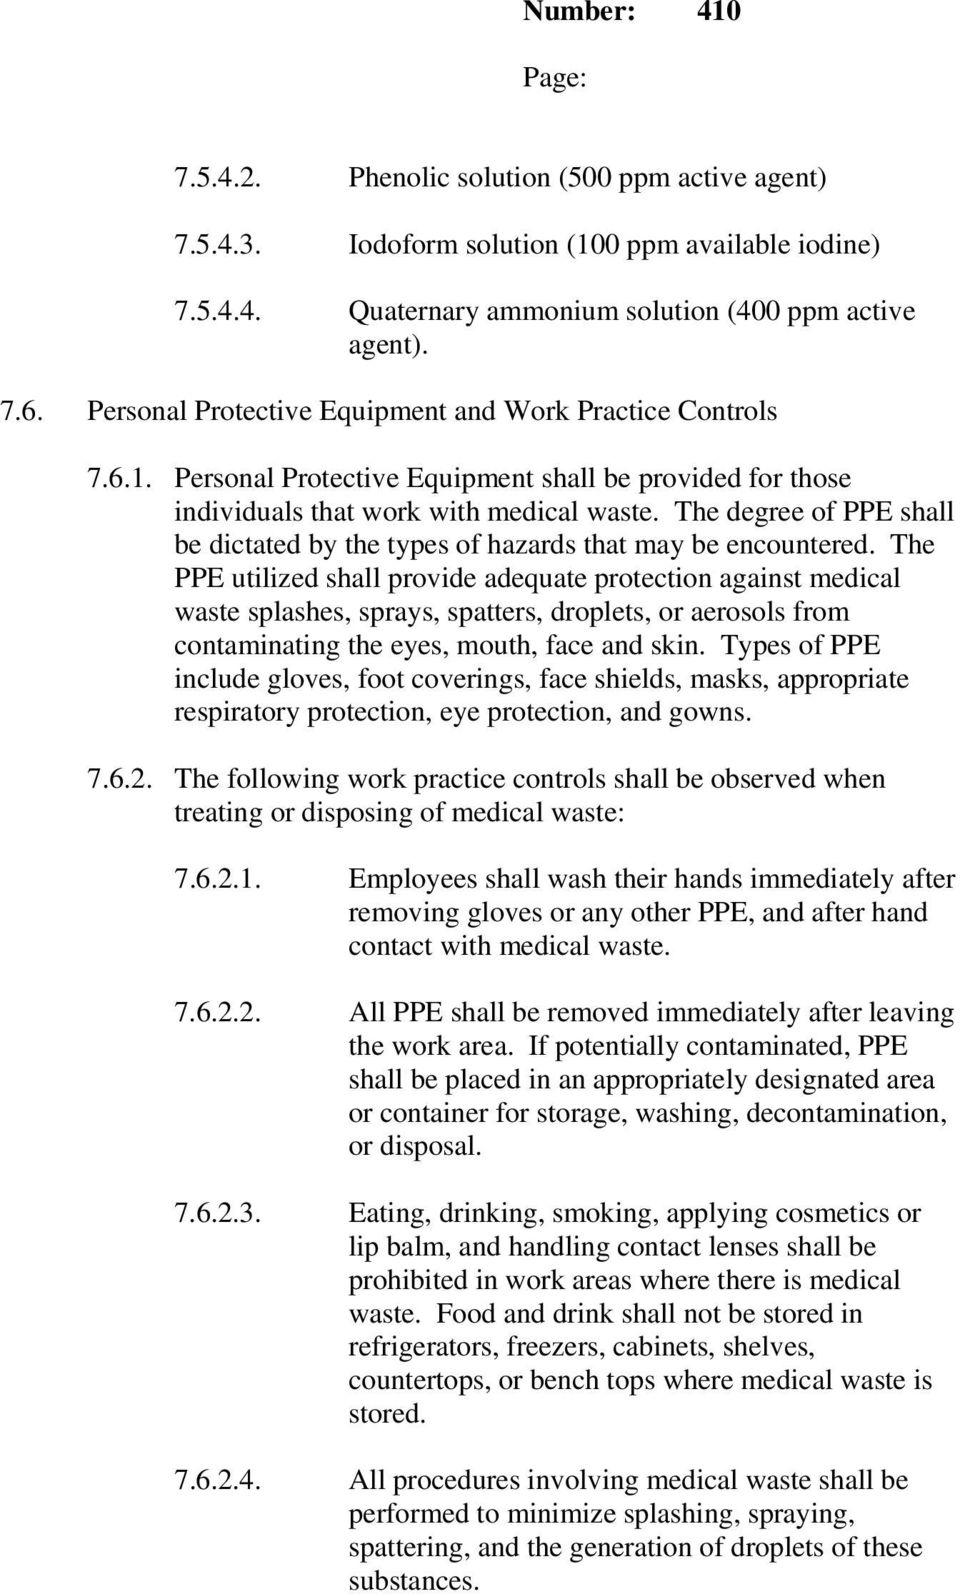 The degree of PPE shall be dictated by the types of hazards that may be encountered.